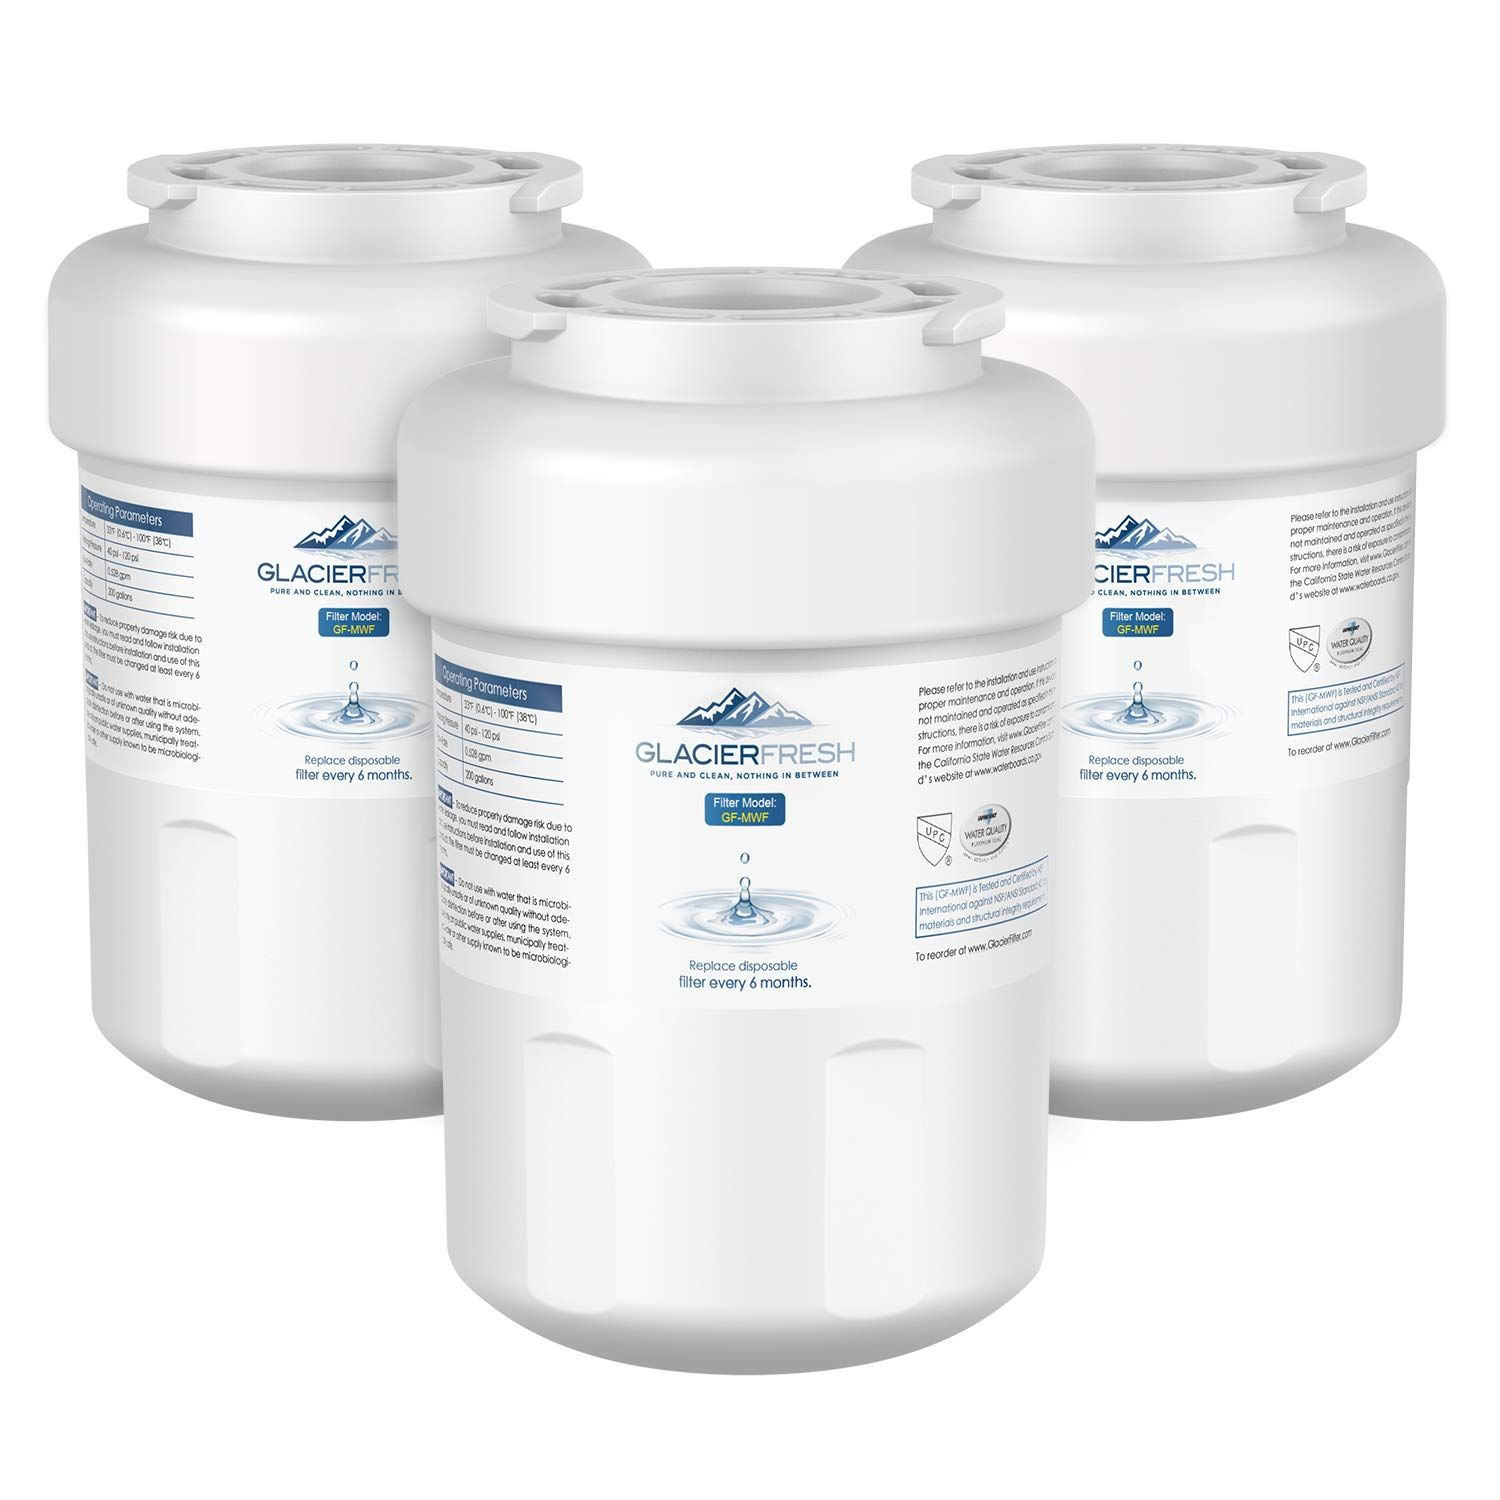 Mwf Water Filter Replacement For Ge Refrigerator Water Filter Best Water Filter